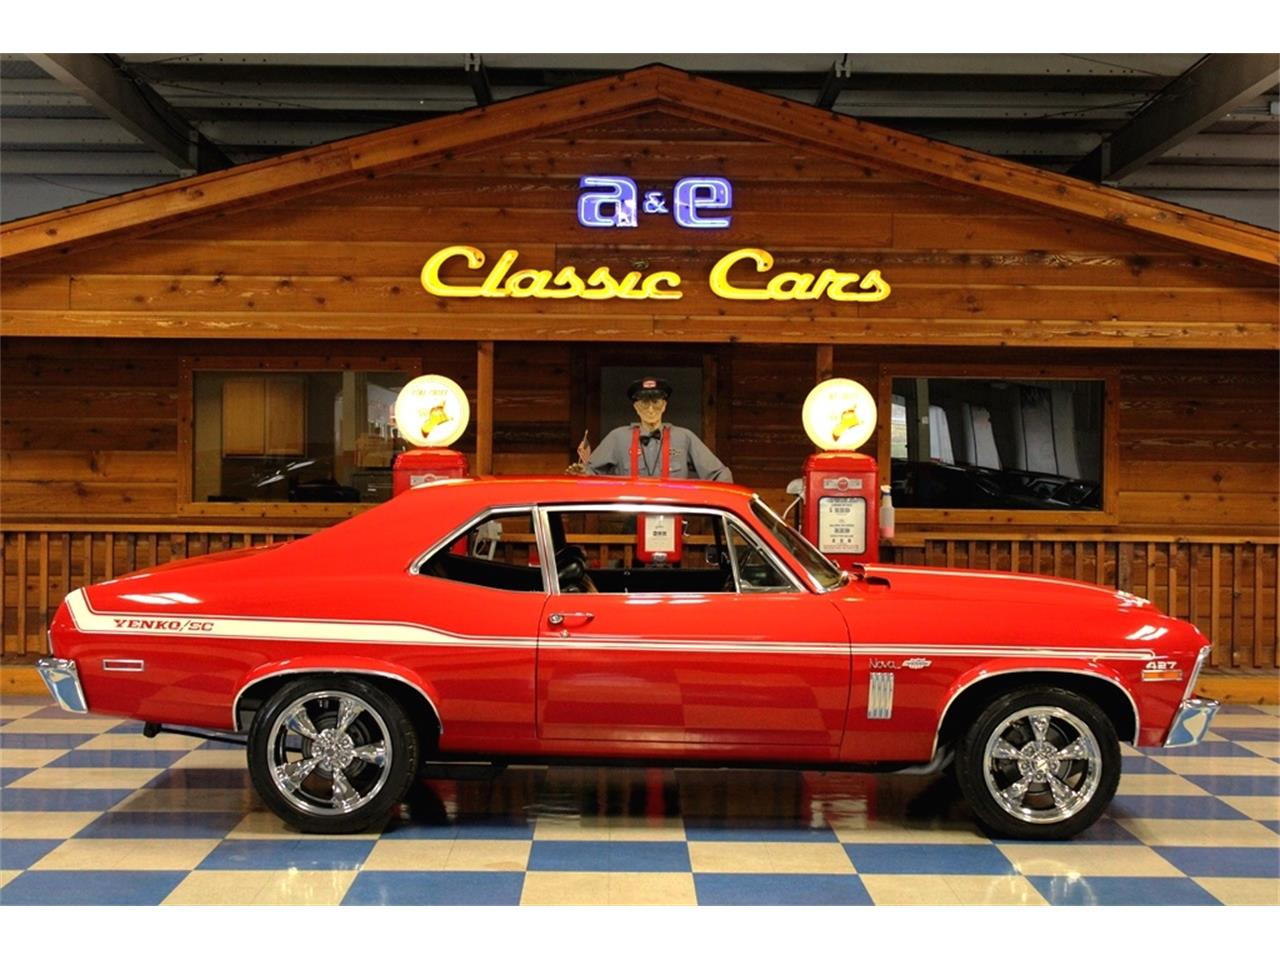 Large Picture of Classic 1970 Nova located in New Braunfels  Texas - $36,900.00 Offered by A&E Classic Cars - QQJ3